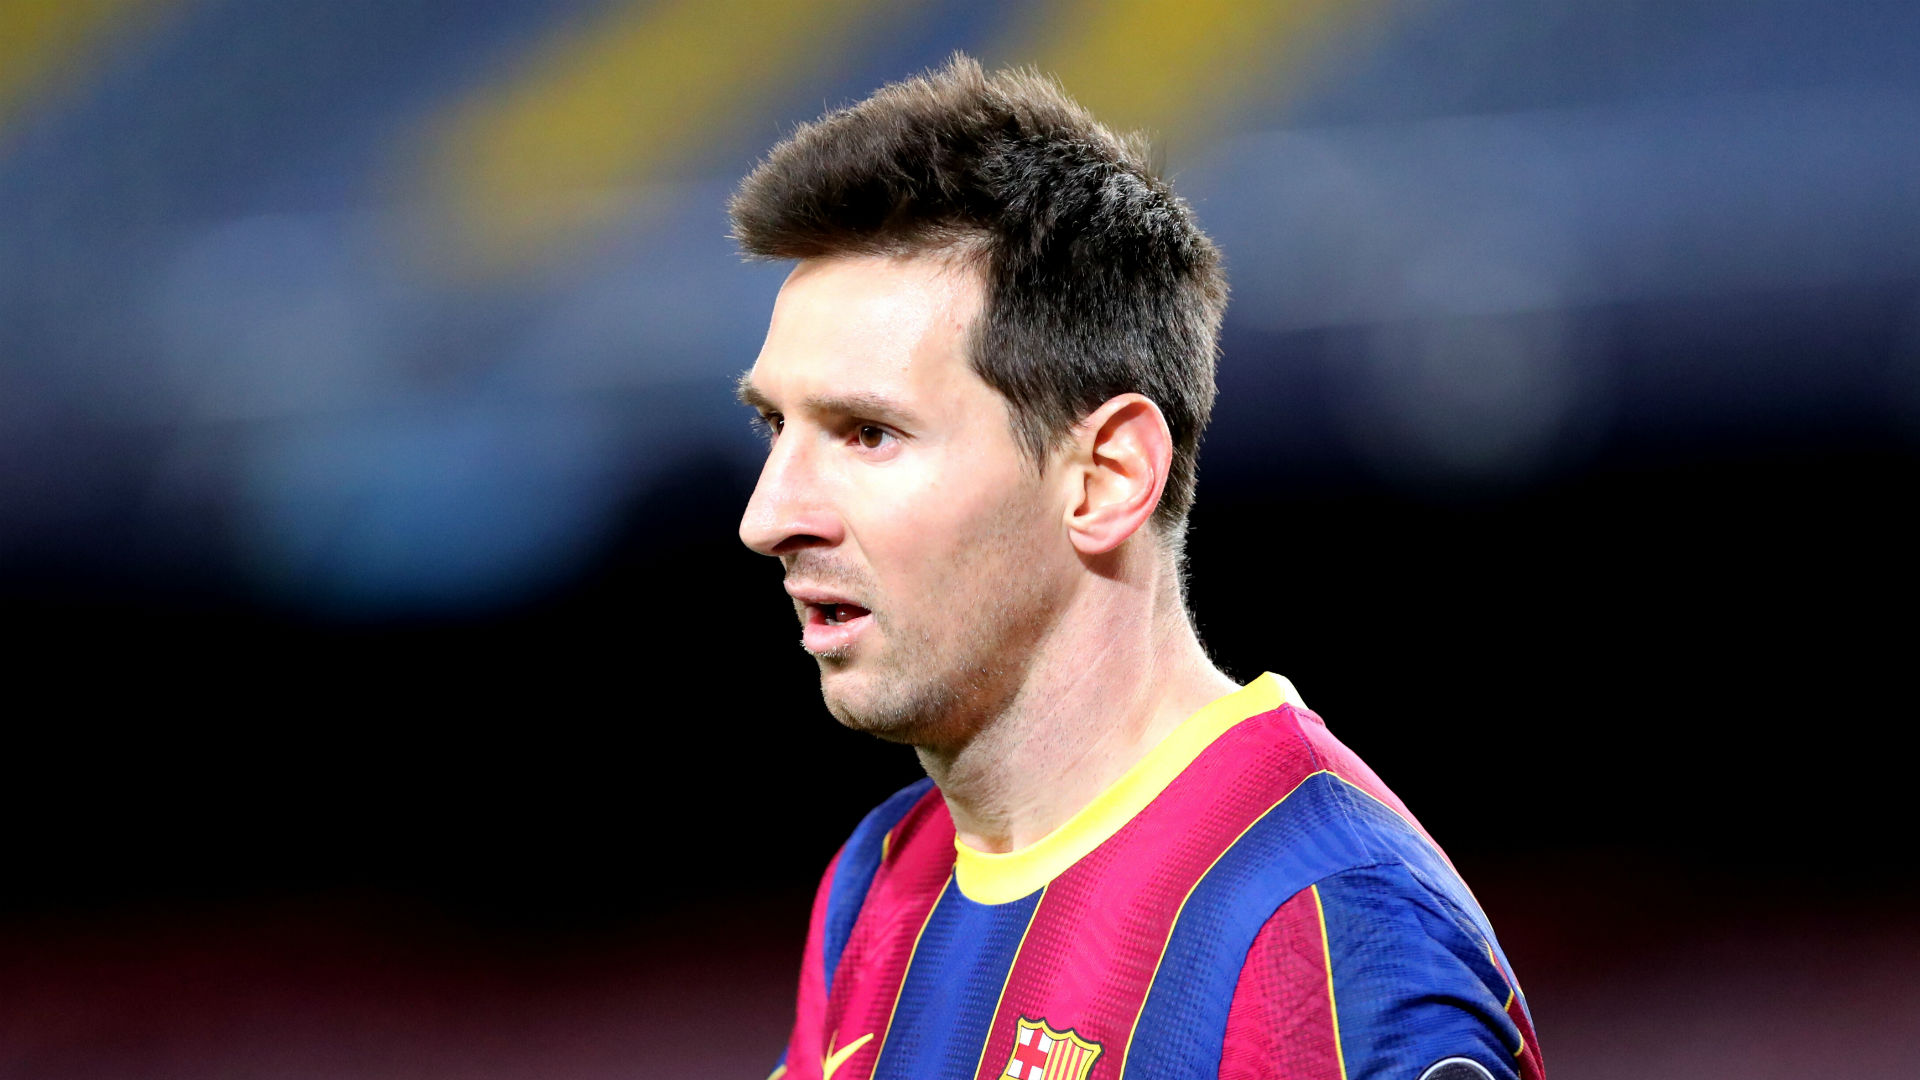 Messi completing ankle injury treatment ahead of Barcelona return